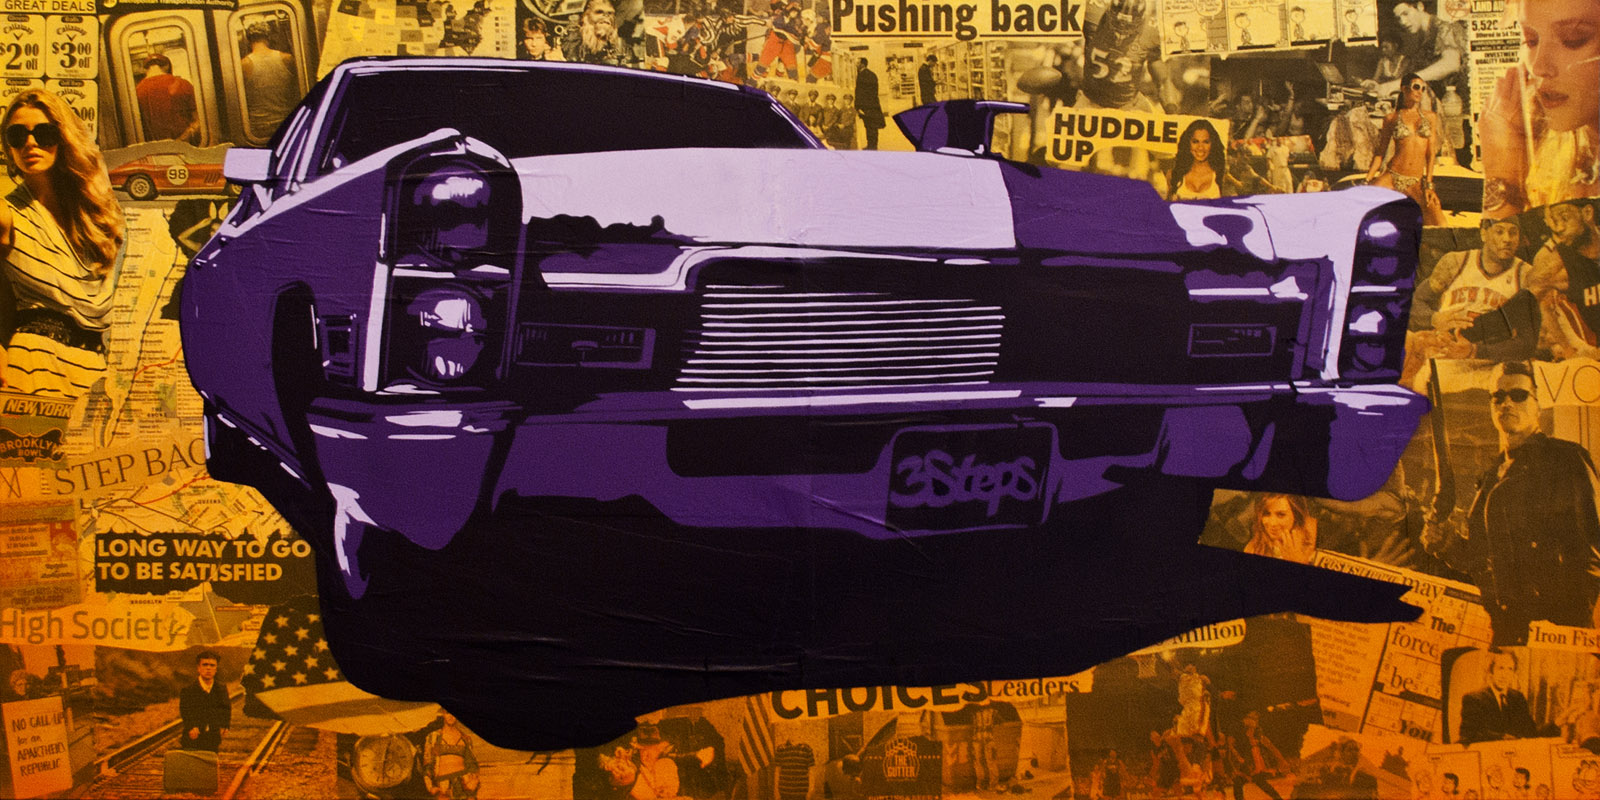 3Steps | Broken Cadillac | 2014 | Urban Art Exhibition